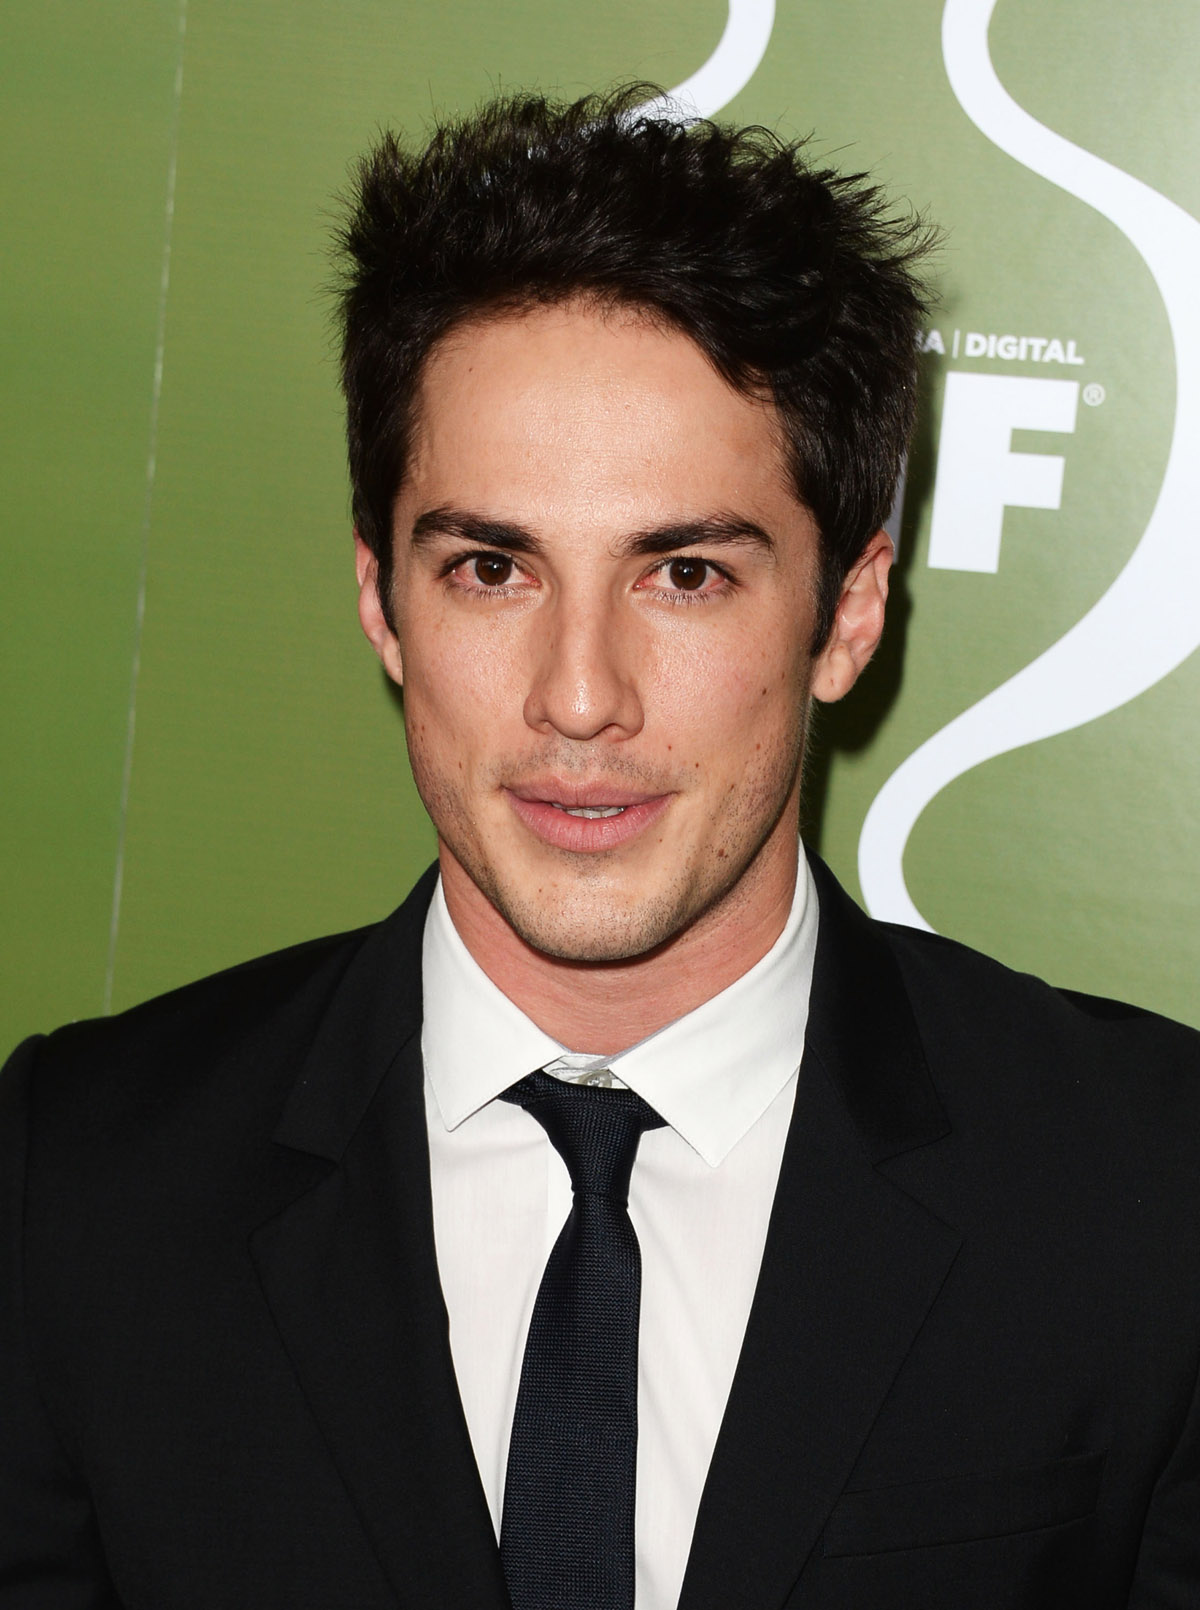 michael trevino ethnicelebsmichael trevino instagram, michael trevino gif, michael trevino wife, michael trevino height, michael trevino and nina dobrev, michael trevino png, michael trevino girlfriend, michael trevino gif hunt, michael trevino ethnicelebs, michael trevino top, michael trevino glasses, michael trevino imdb, michael trevino vampire diaries, michael trevino tumblr, michael trevino dating